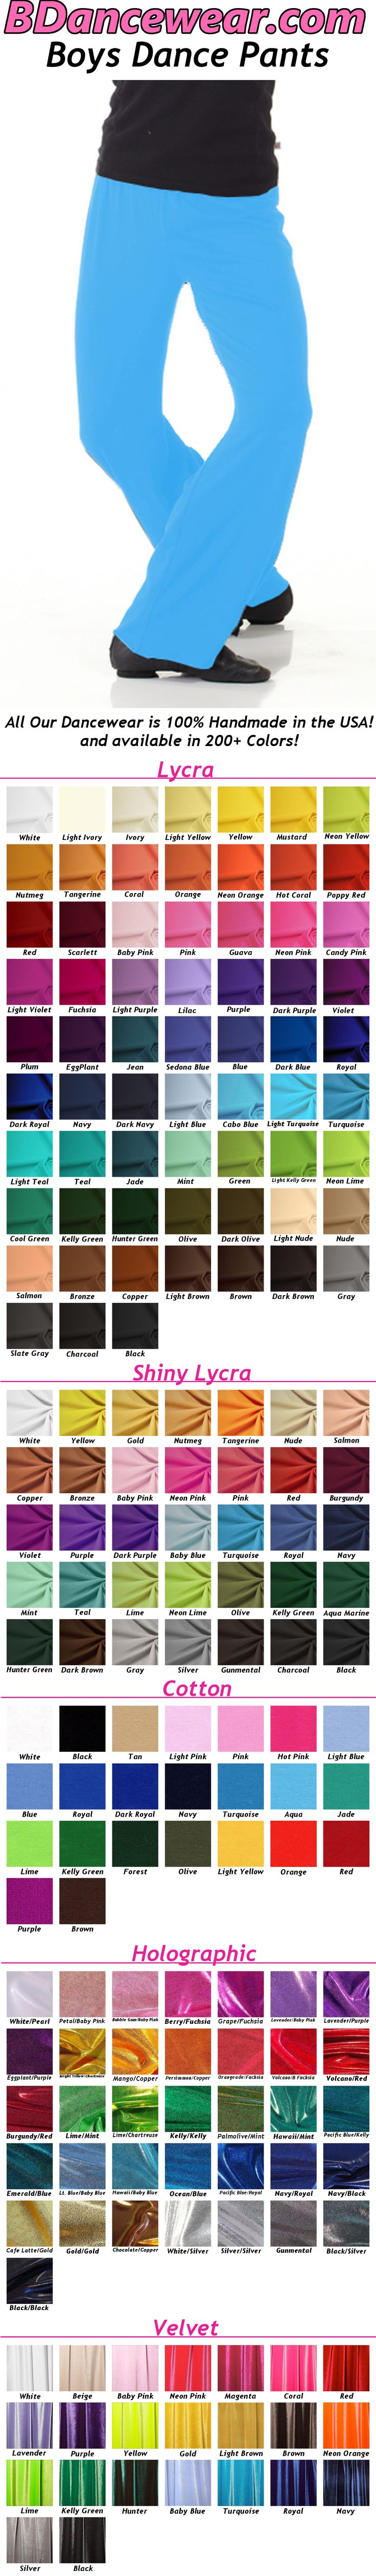 BDancewear.com's Boy's Dance Pants available in 200+ Colors, 5 fabrics and it is Handmade in the USA!  Click on the pin to see all the colors!